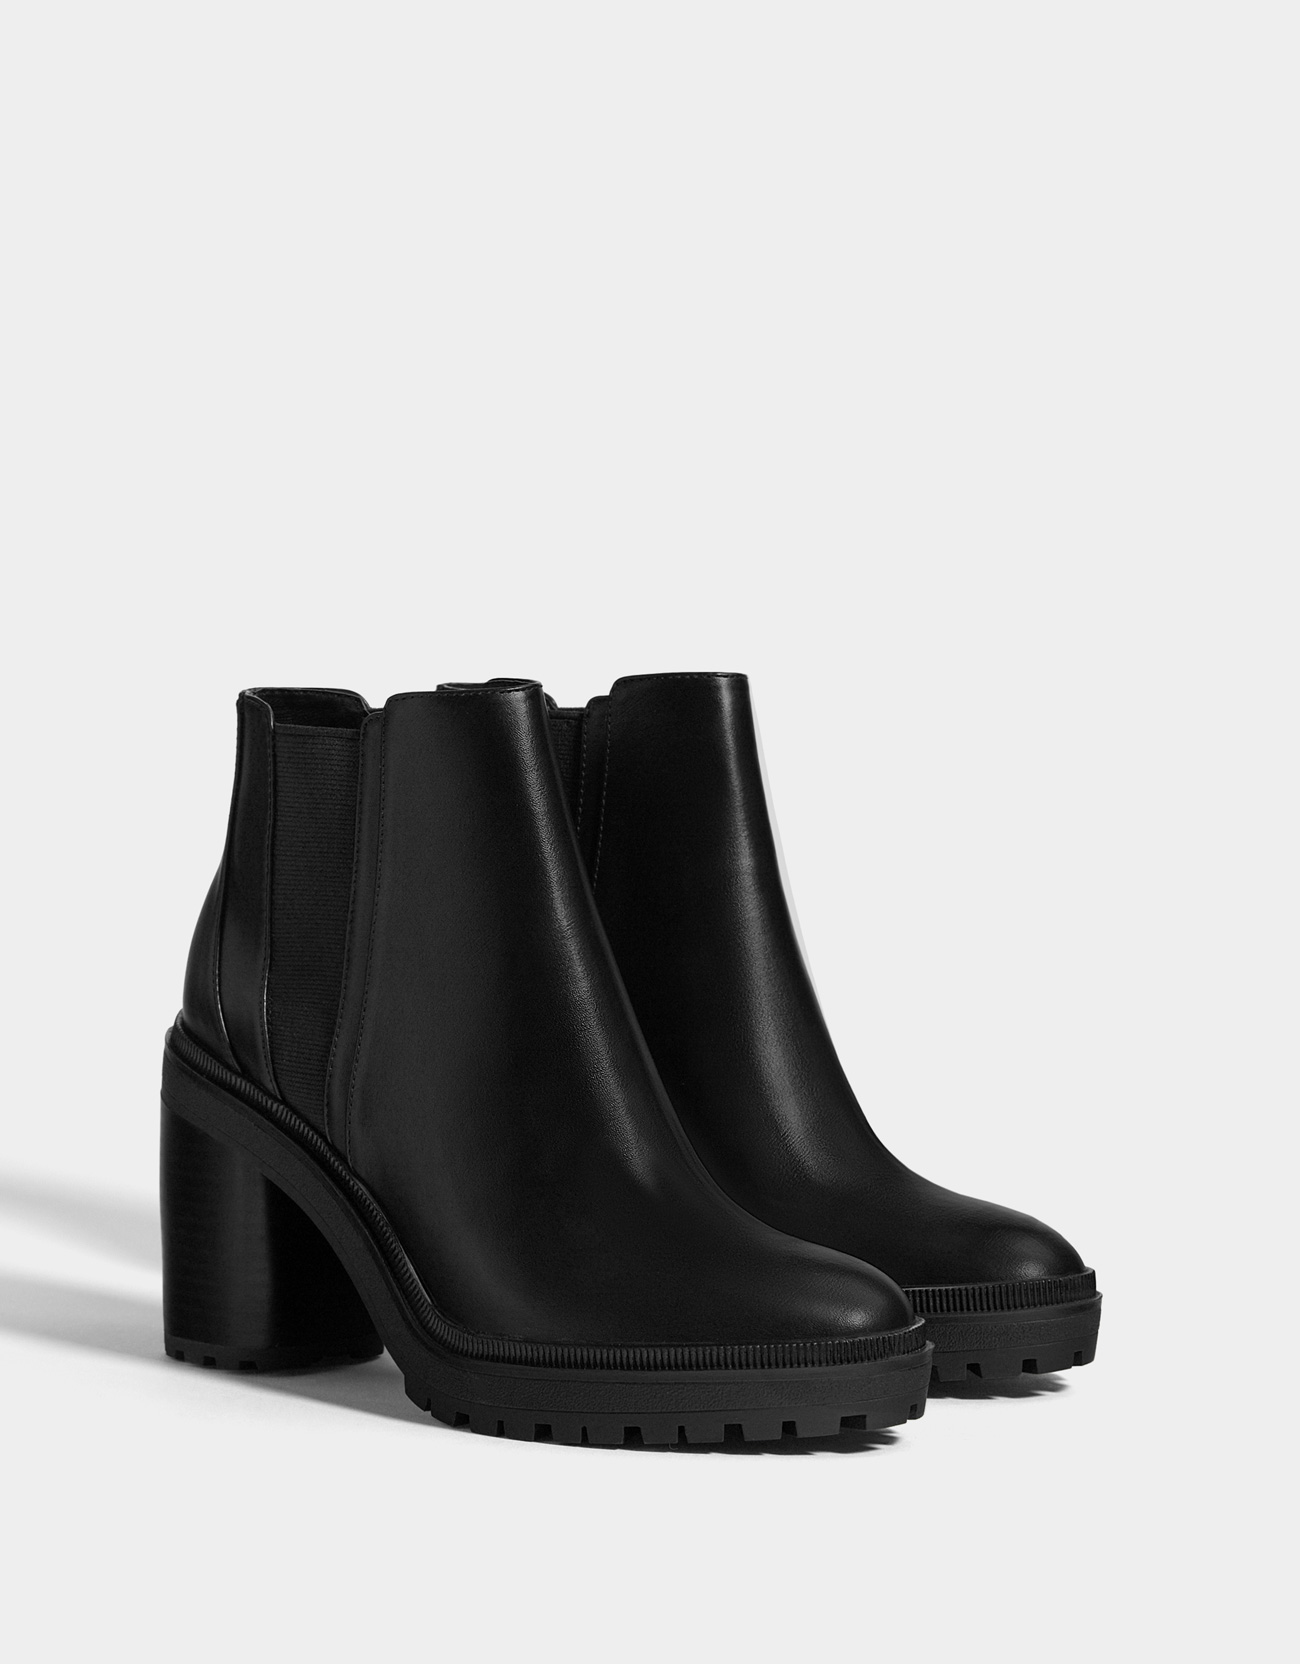 727d9777dfdc Platform ankle boots with elastic panels - null - Bershka Cyprus